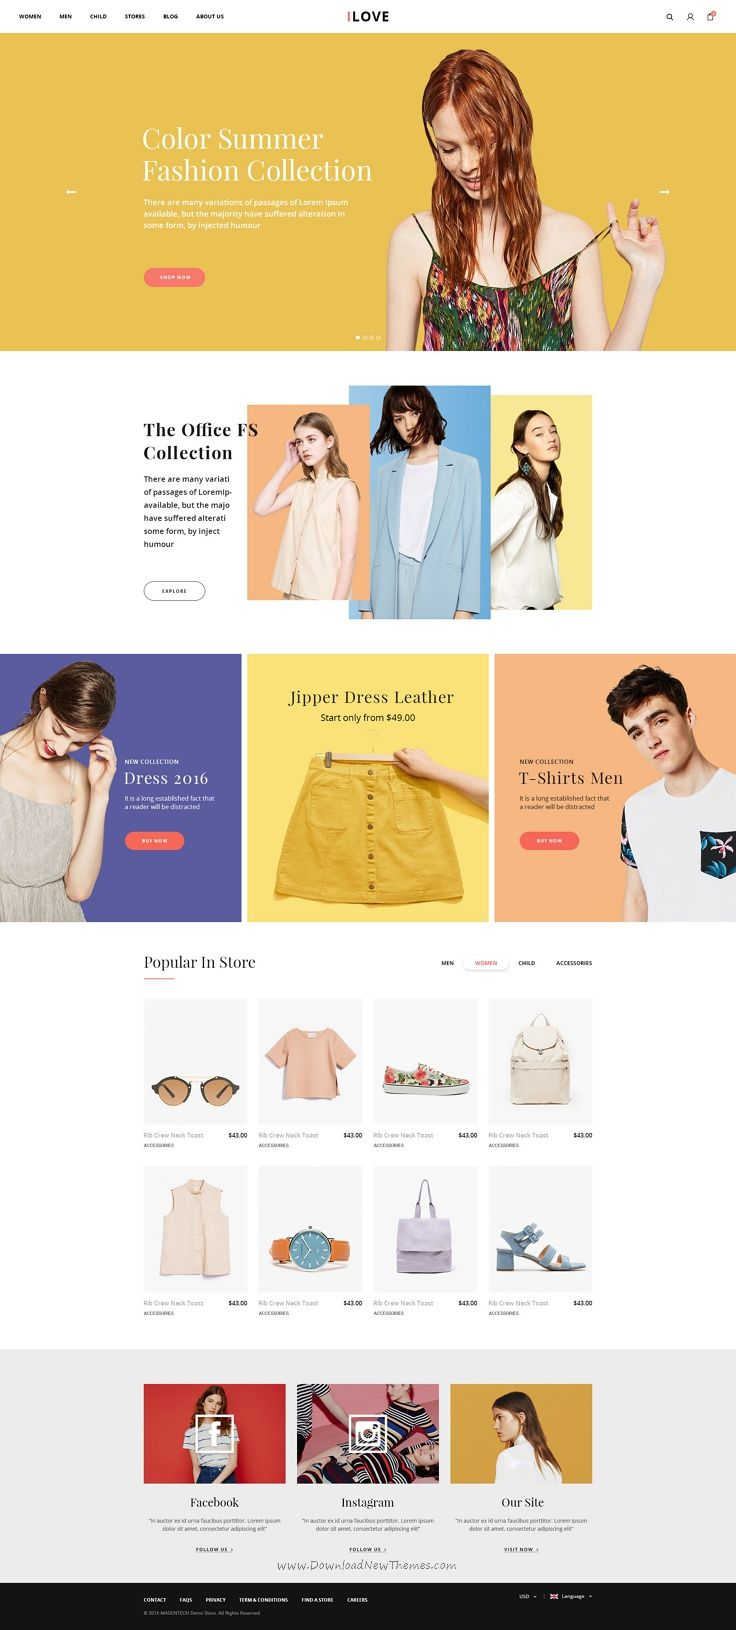 iLove is modern & elegant premium #PSD template for online #fashion store #website with 5 stunning homepage style and 41 organized PSD pages download now➯ https://themeforest.net/item/ilove-creative-online-fashion-psd-template/17085225?ref=Datasata